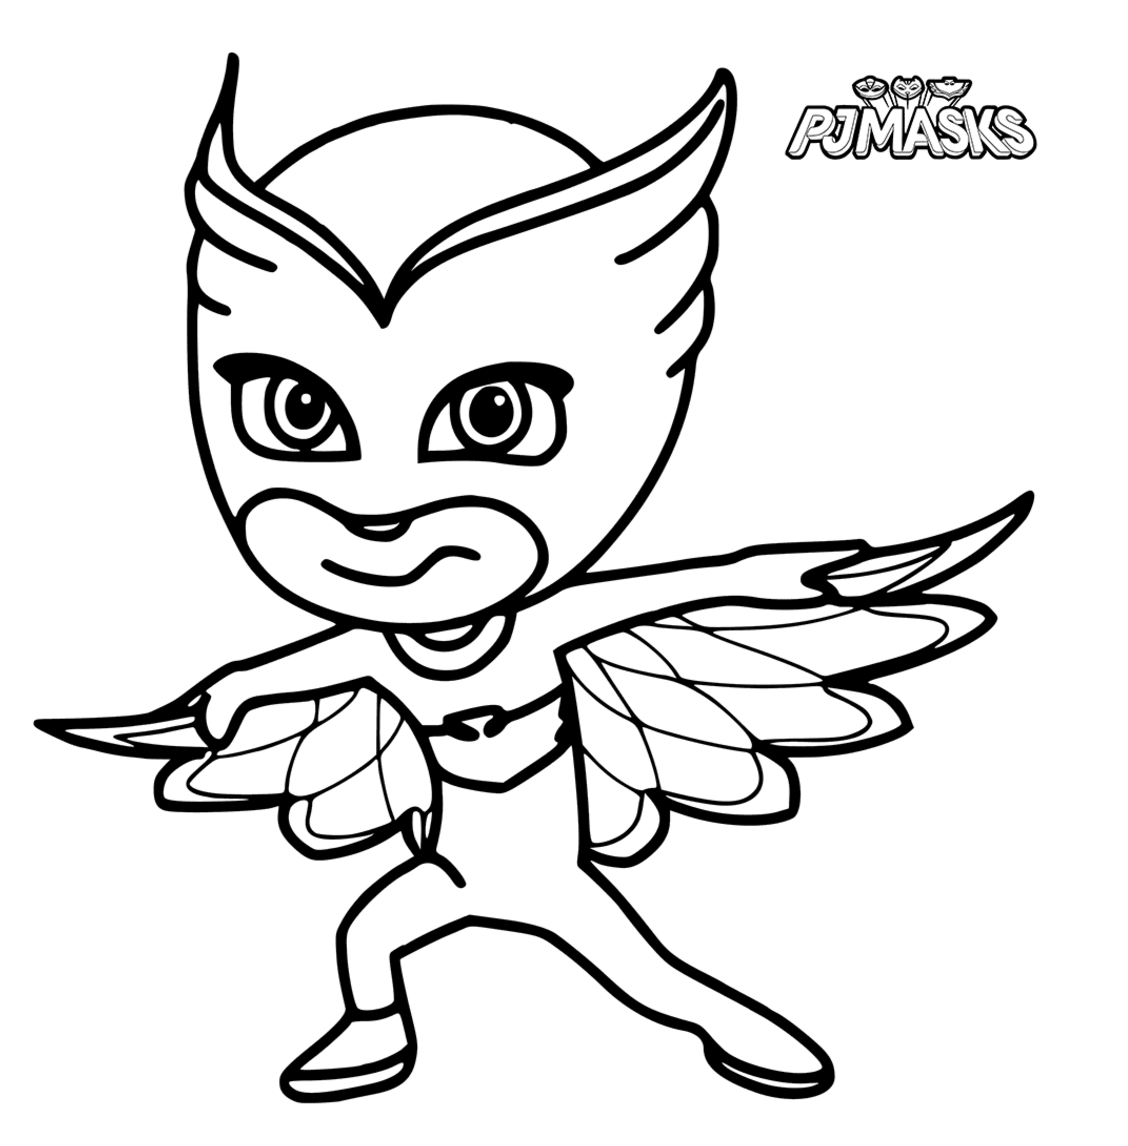 Pj Masks Coloring Pages Black And White